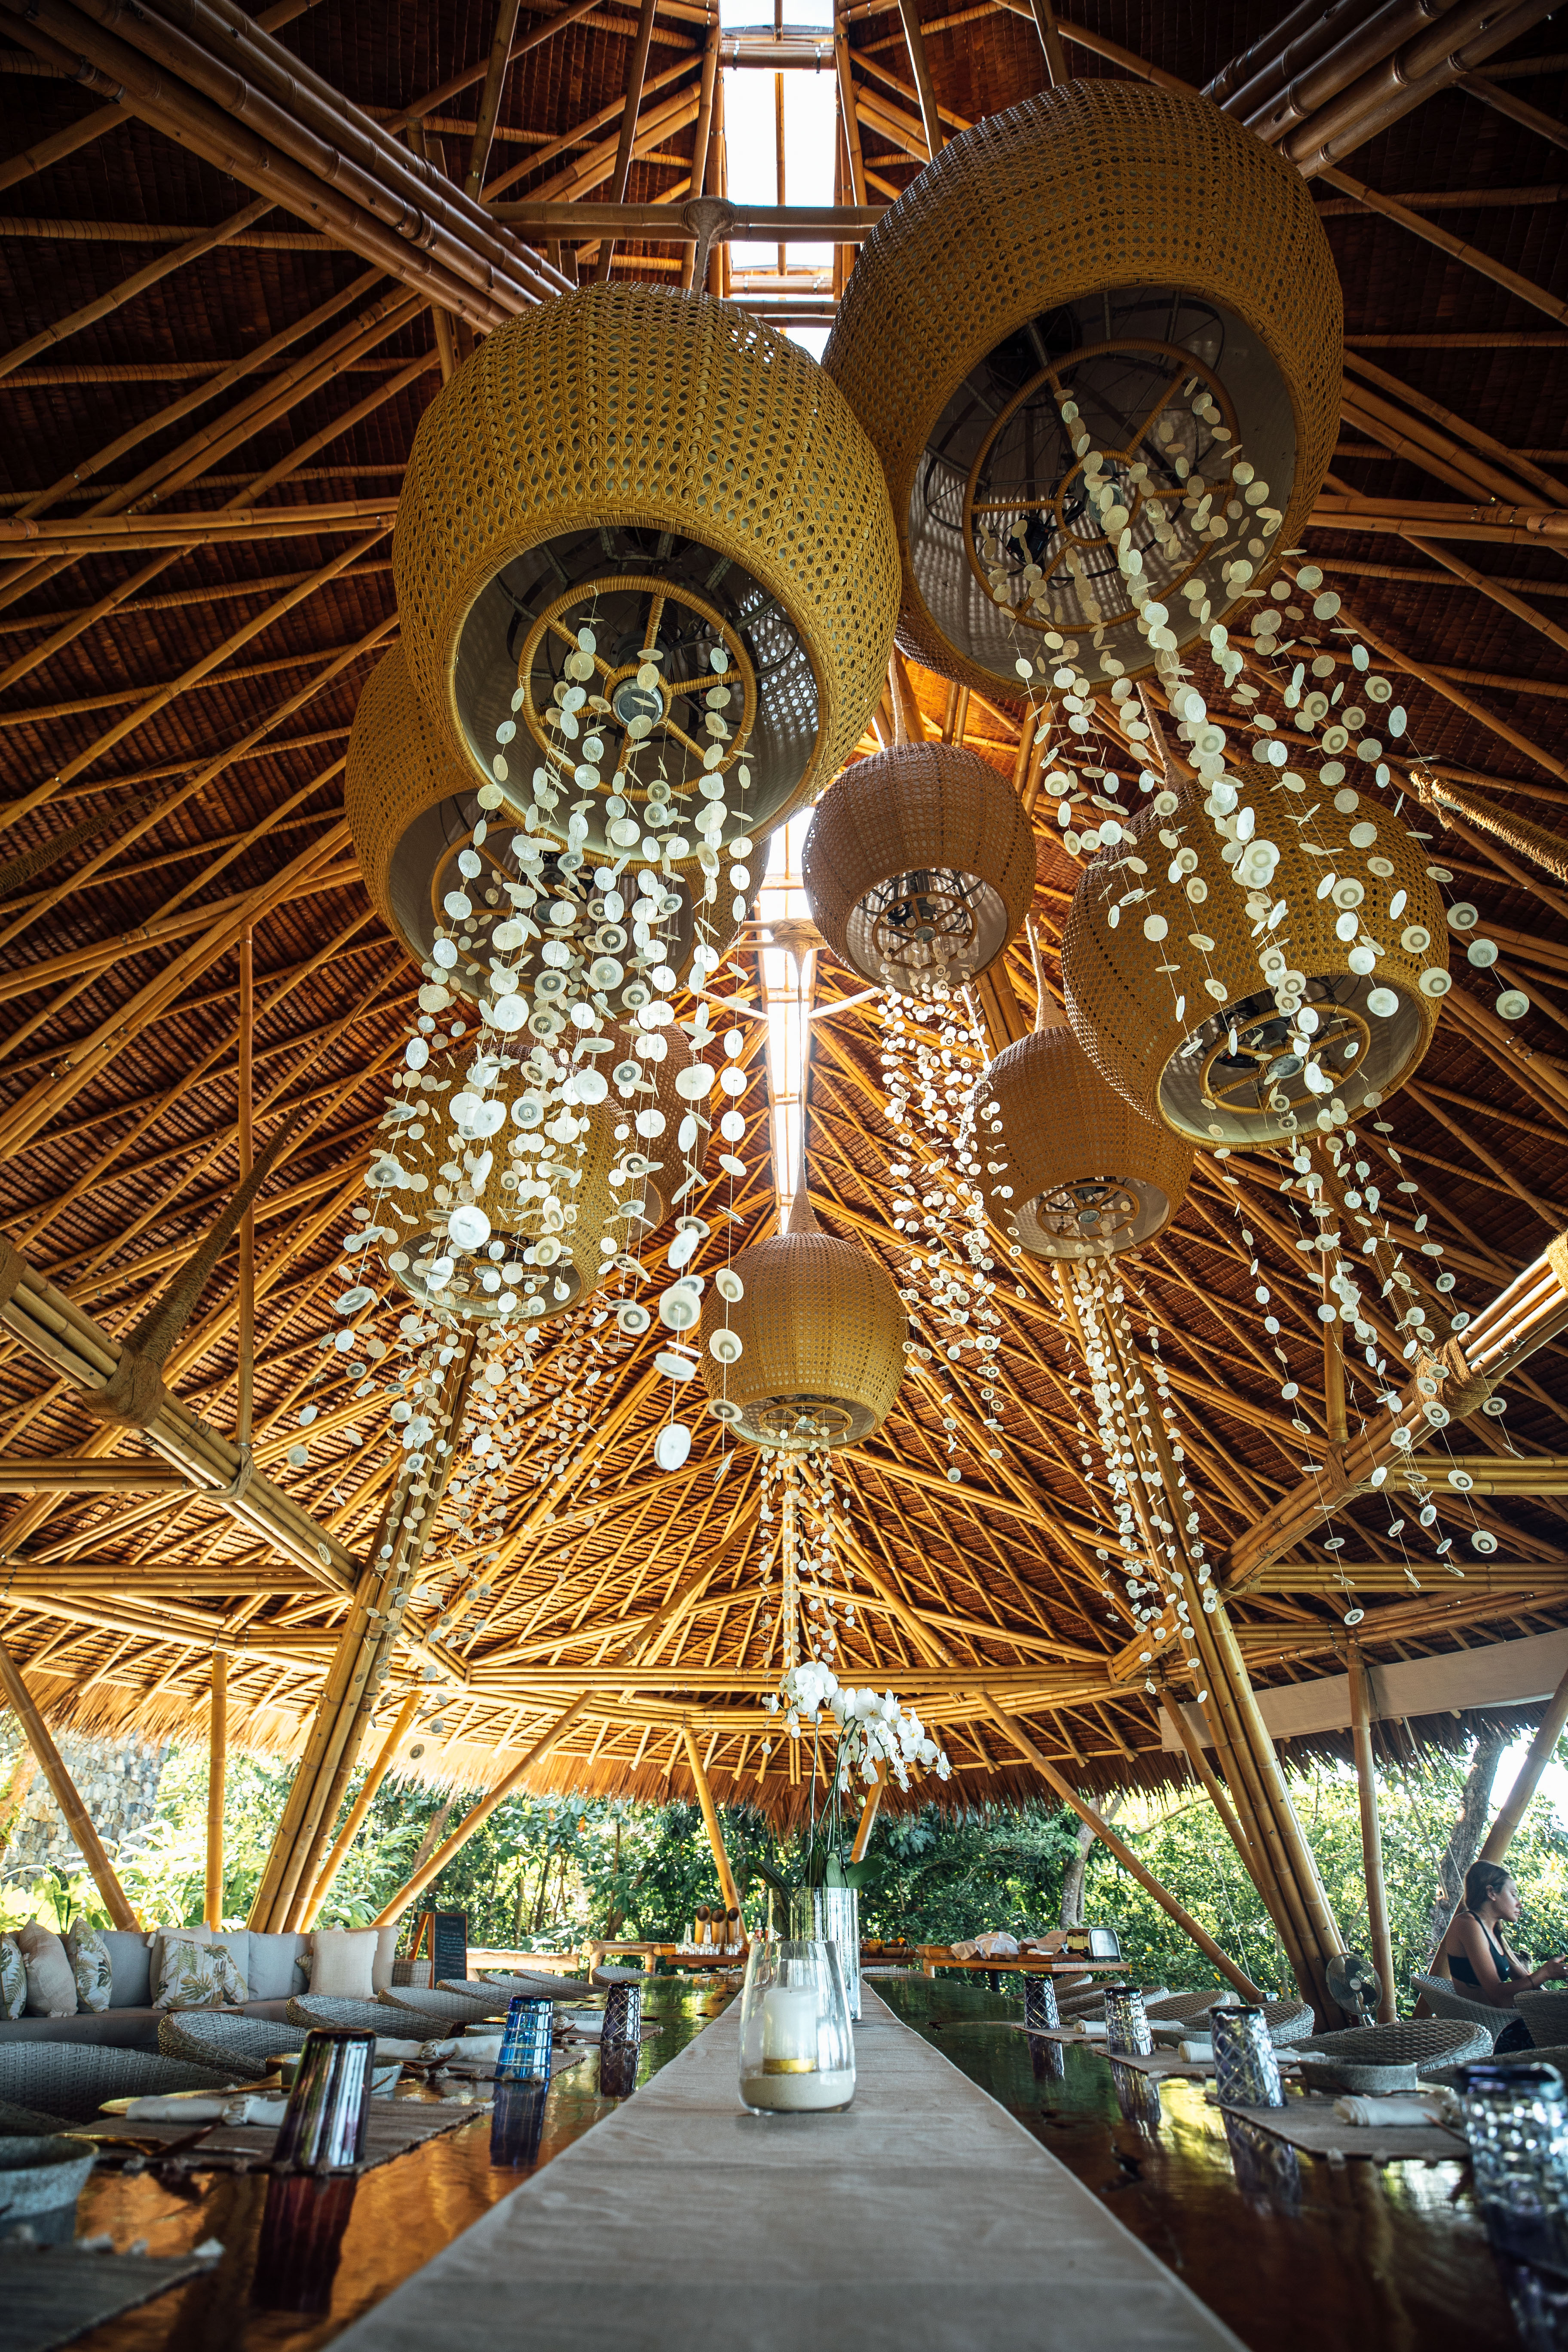 close_up_jellyfish_tentacles_lights_from_wooden_table_treetops